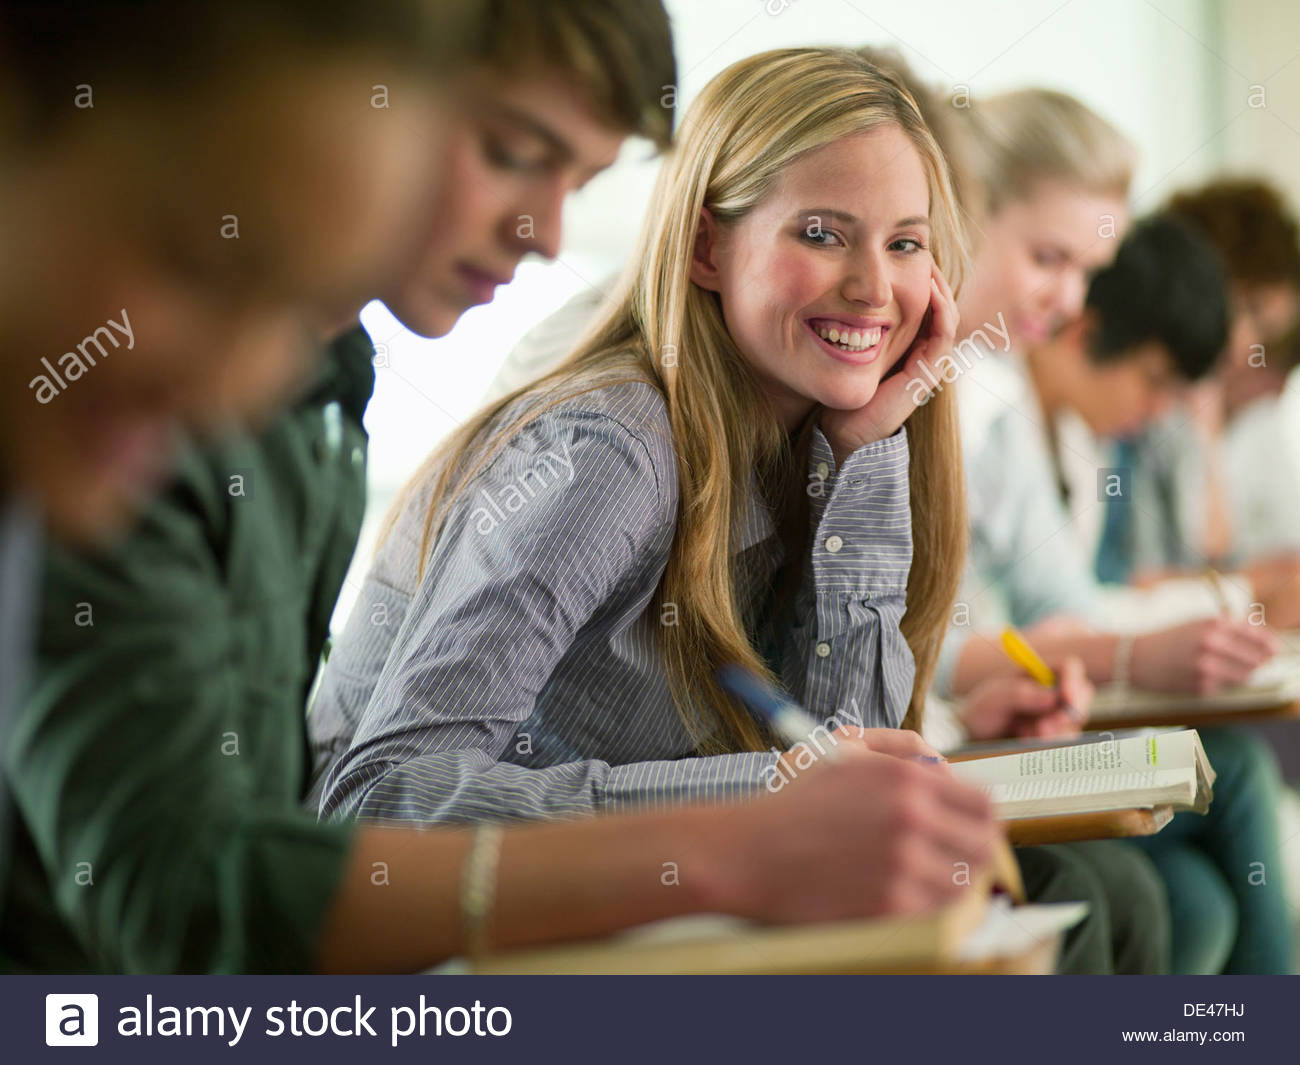 Smiling college student sitting at desk in classroom - Stock Image